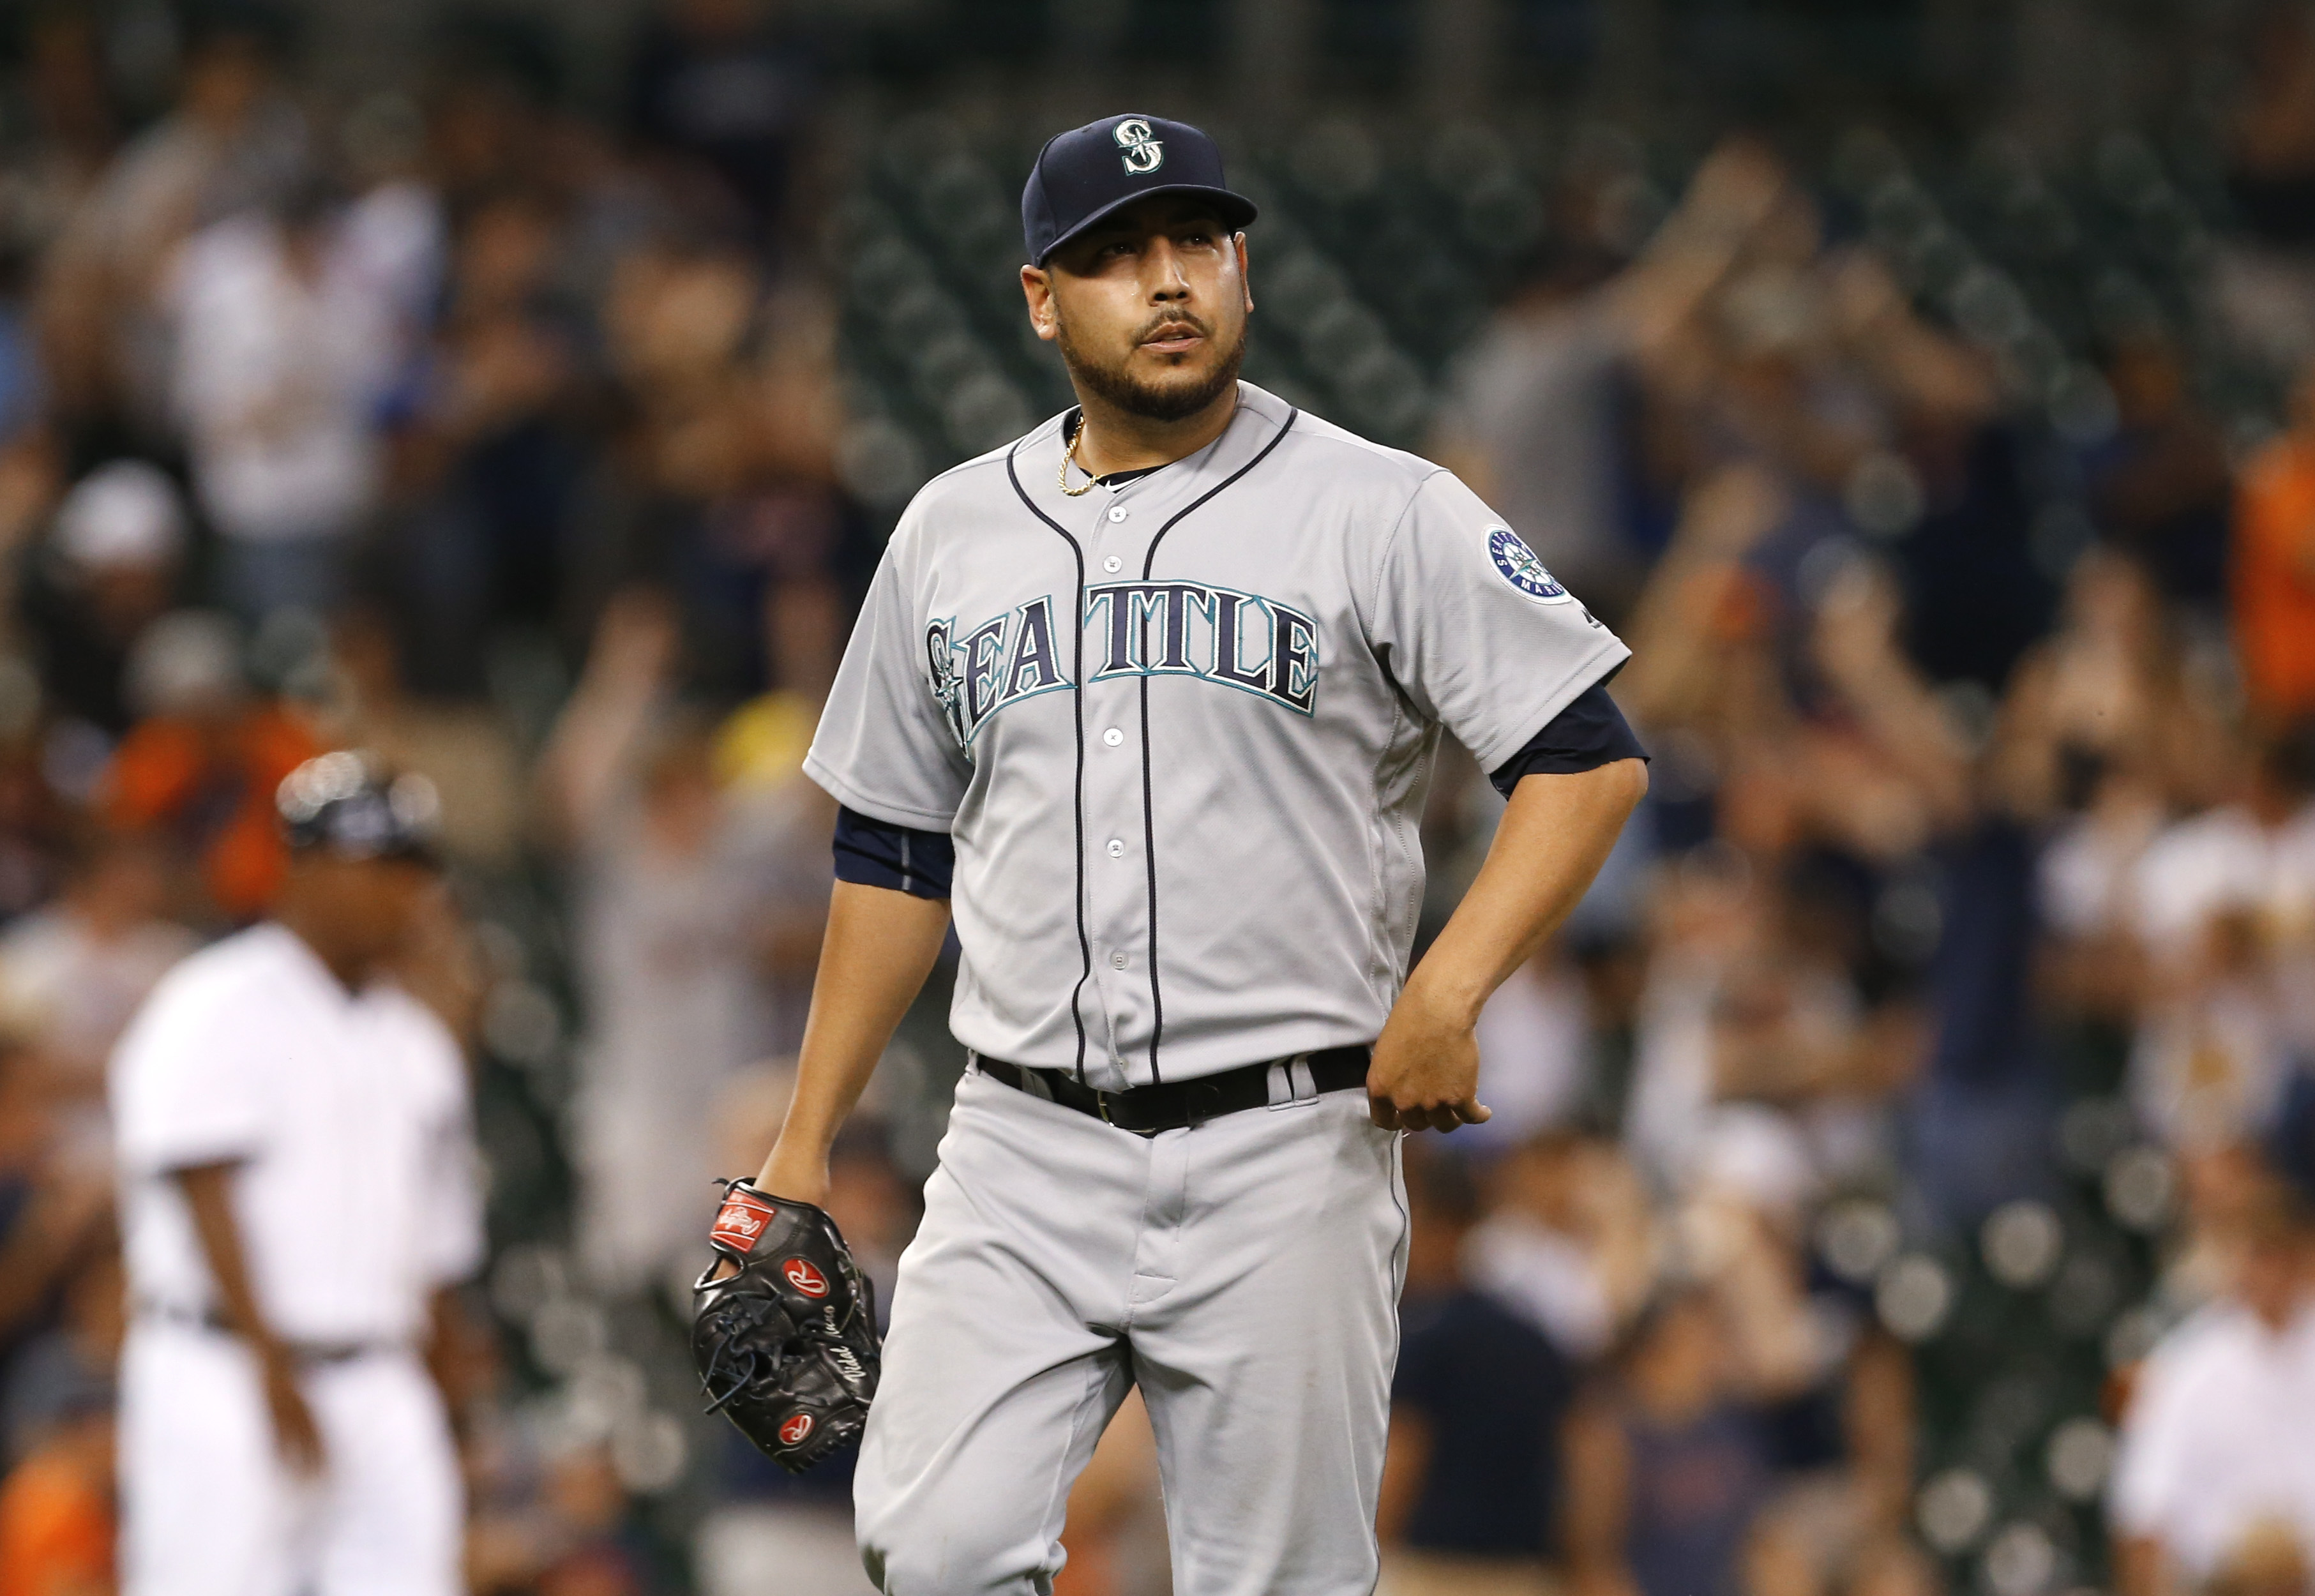 Seattle Mariners relief pitcher Vidal Nuno walks off the field after giving up a solo home run to Detroit Tigers' Justin Upton during the 12th inning of a baseball game in Detroit, Monday, June 20, 2016. Detroit won 8-7. (AP Photo/Paul Sancya)